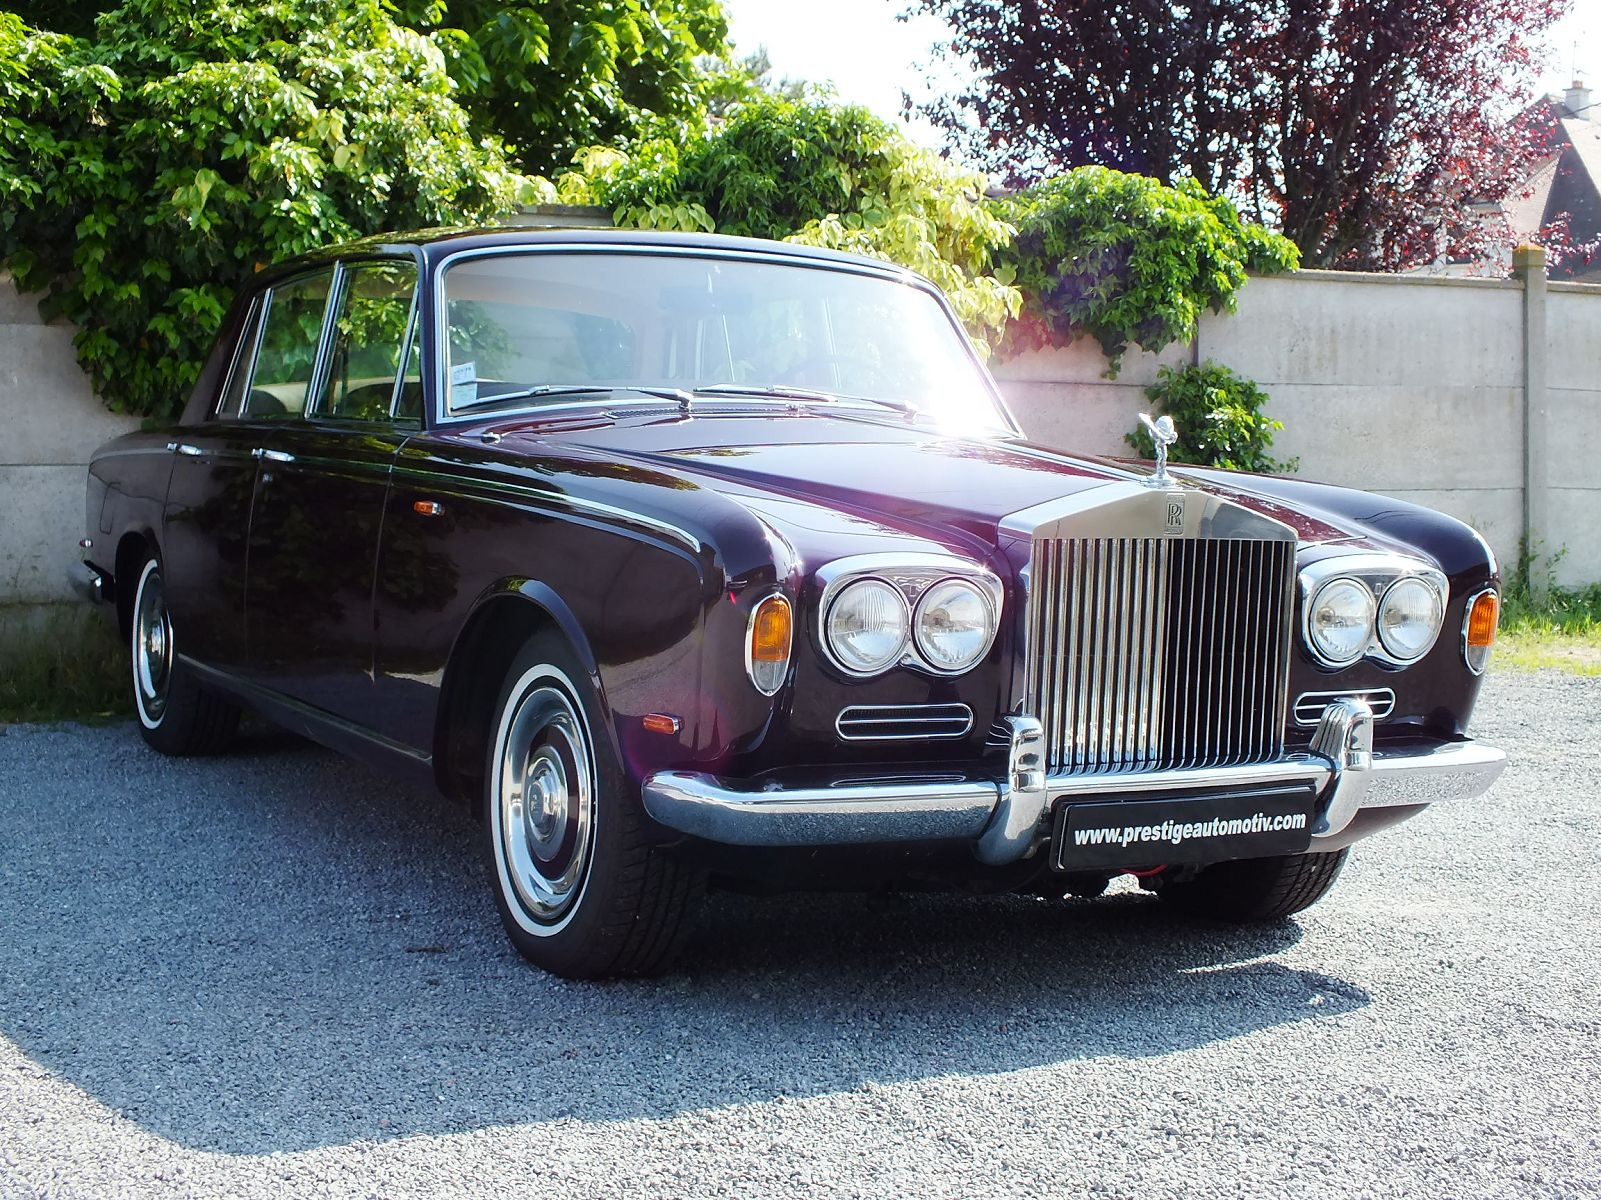 Rolls Royce Silver Shadow I 69